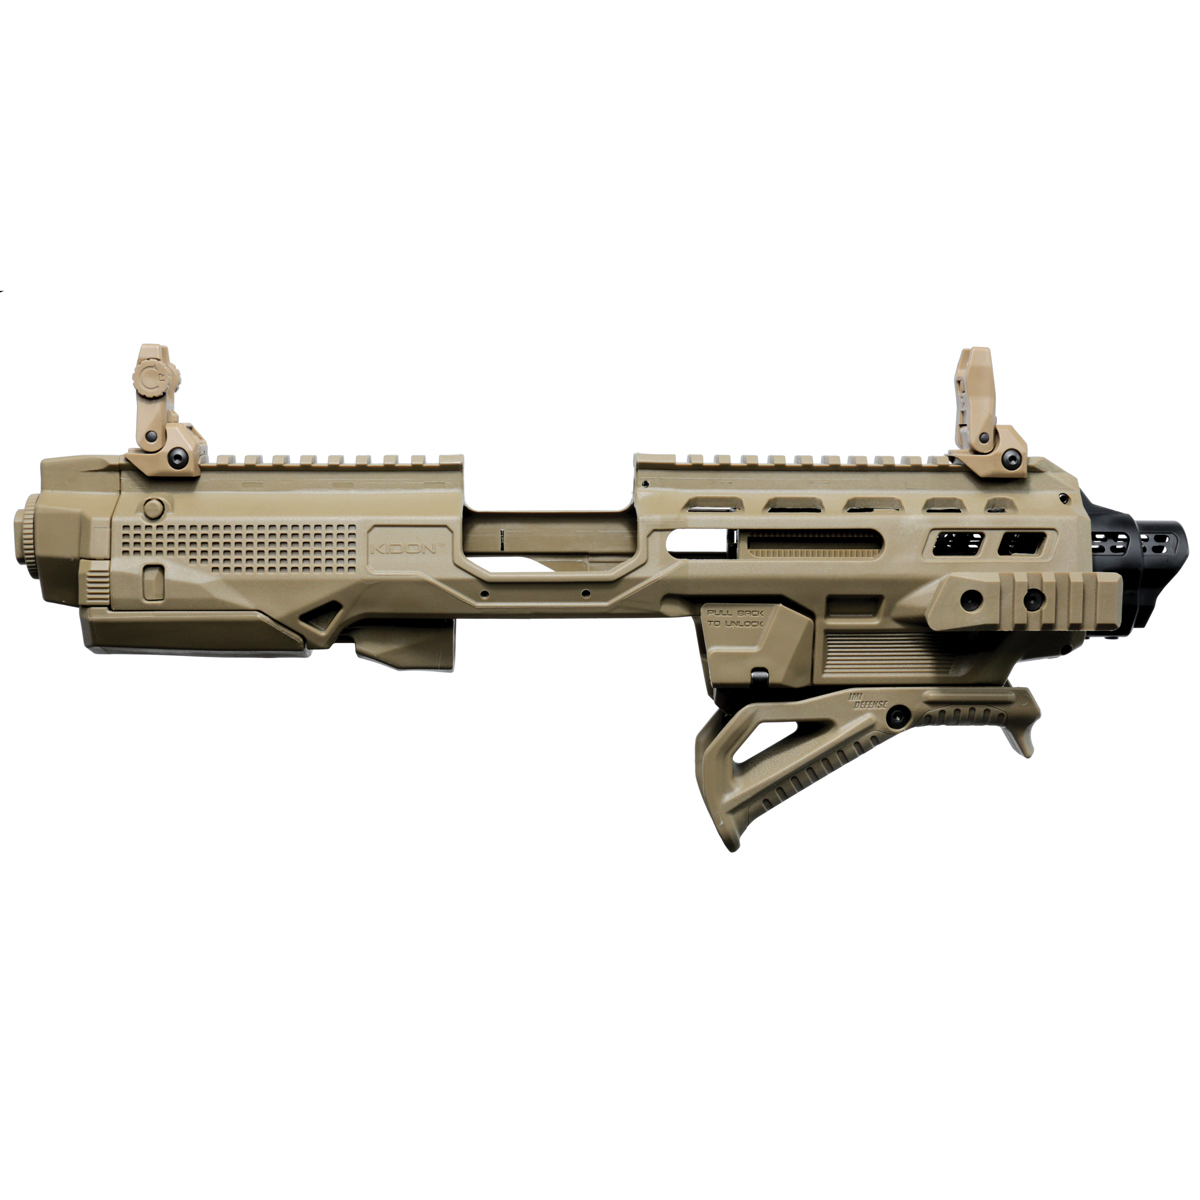 Kidon™ - Pistol Conversion Kit2